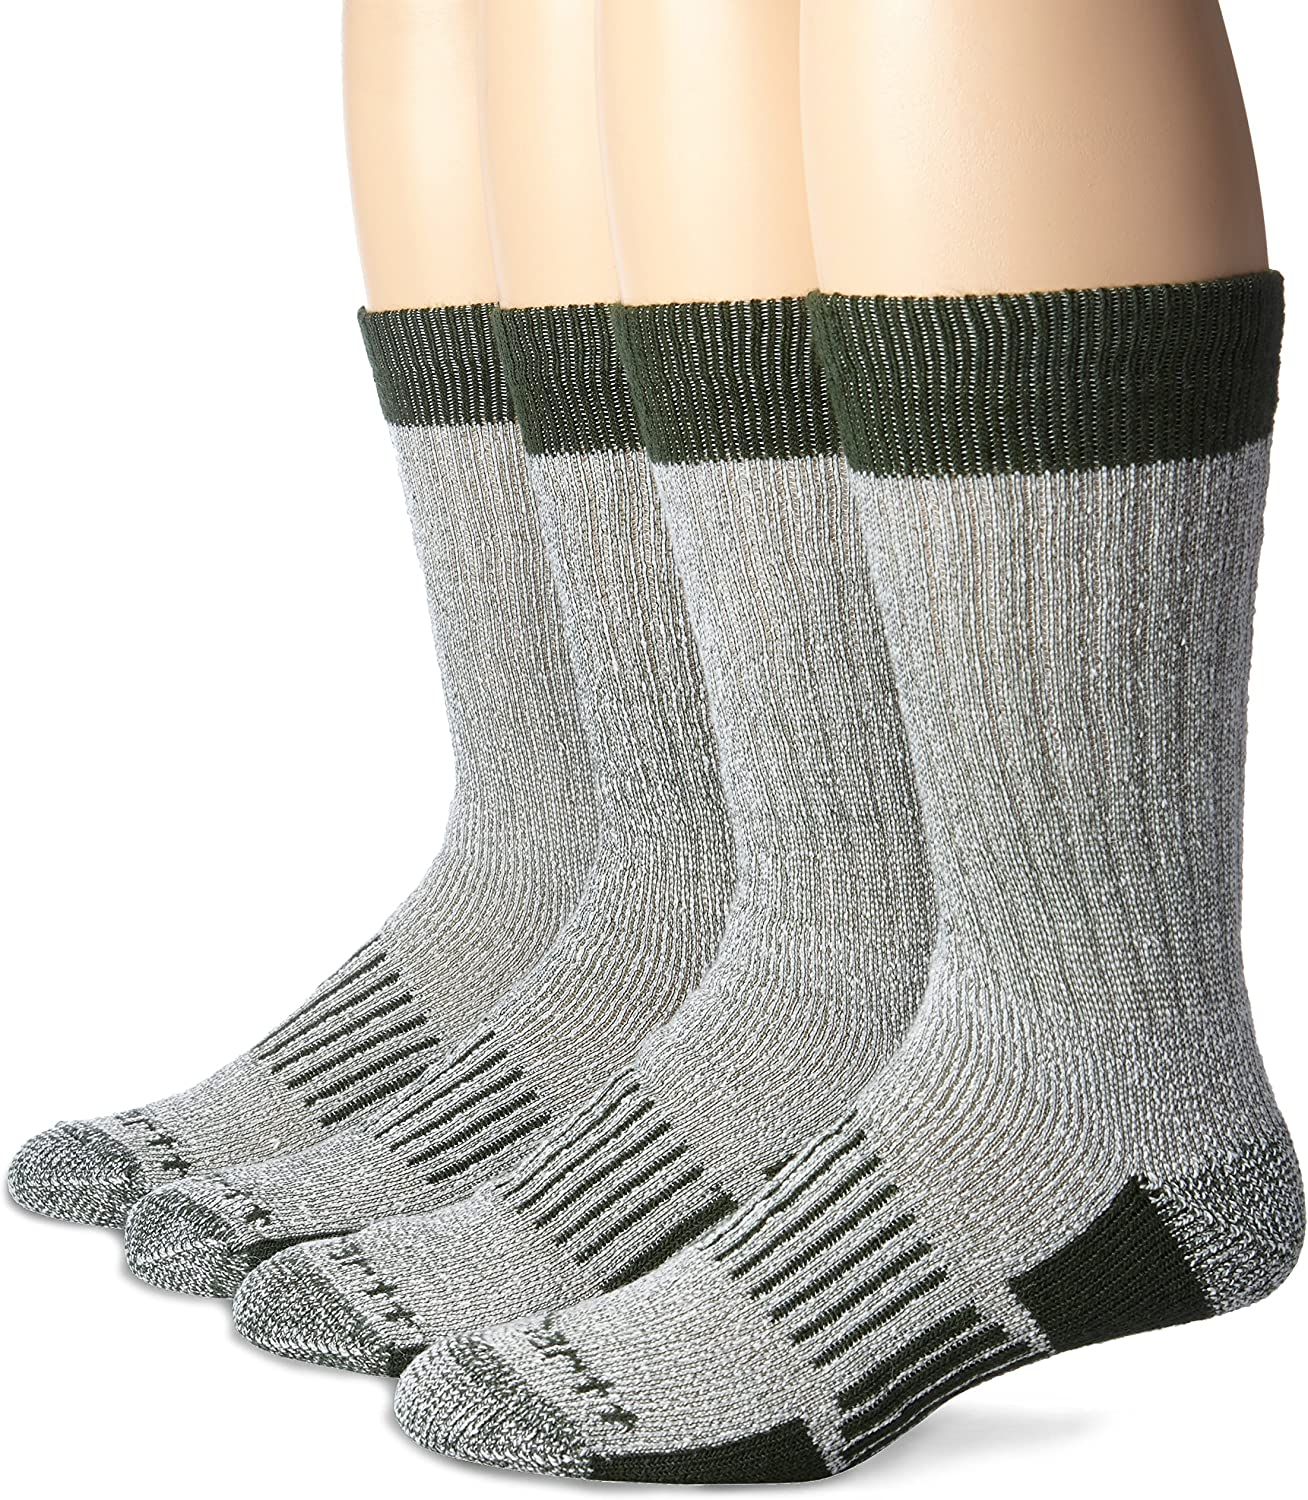 Carhartt Men's A118-4 Cold Weather Wool Blend Crew Socks (Pack of 4)